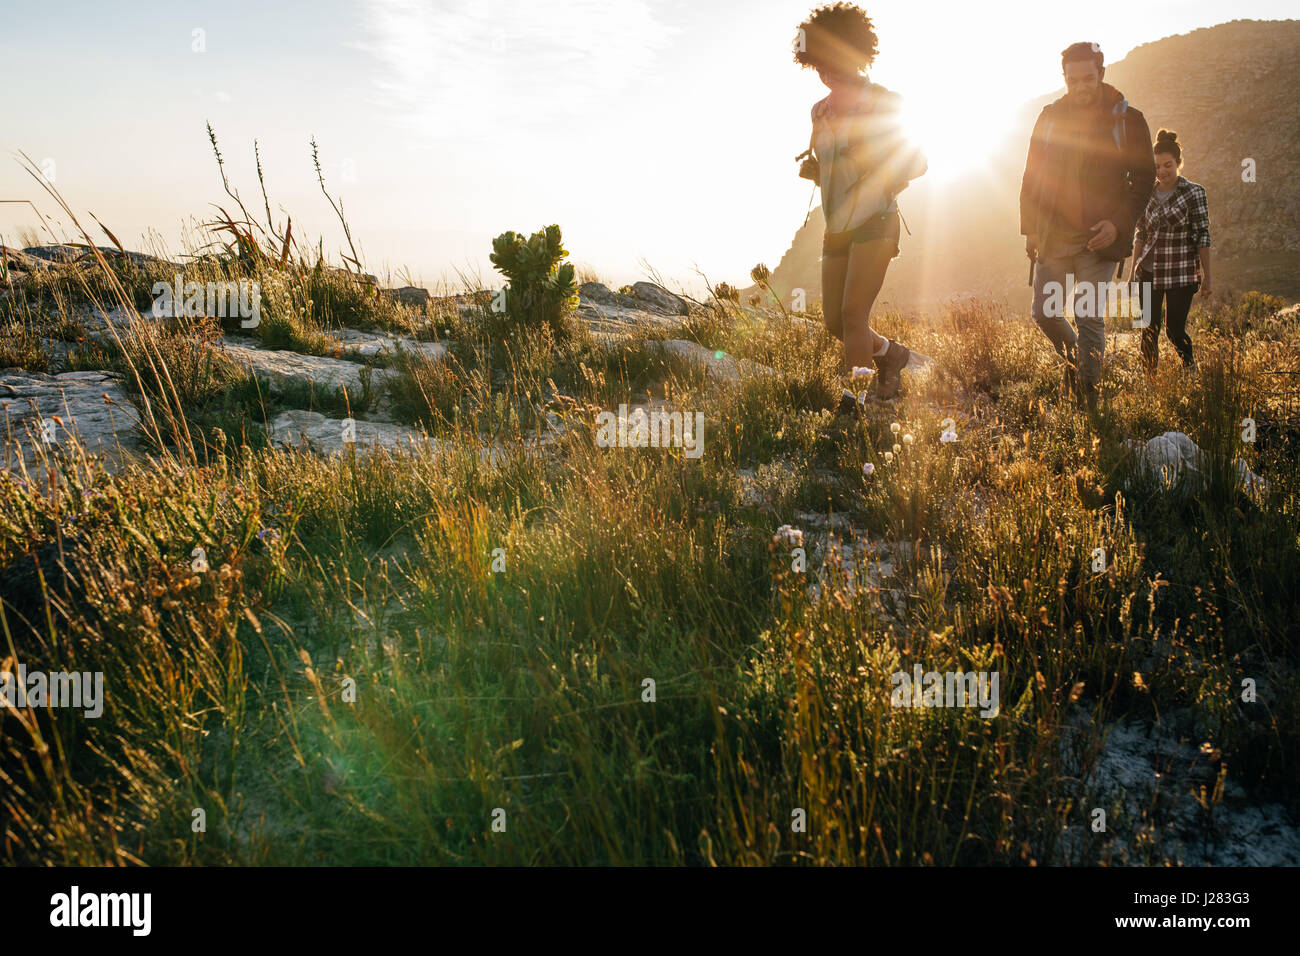 Group of young people on country walk on a sunny day. Young men and women hiking in countryside. - Stock Image